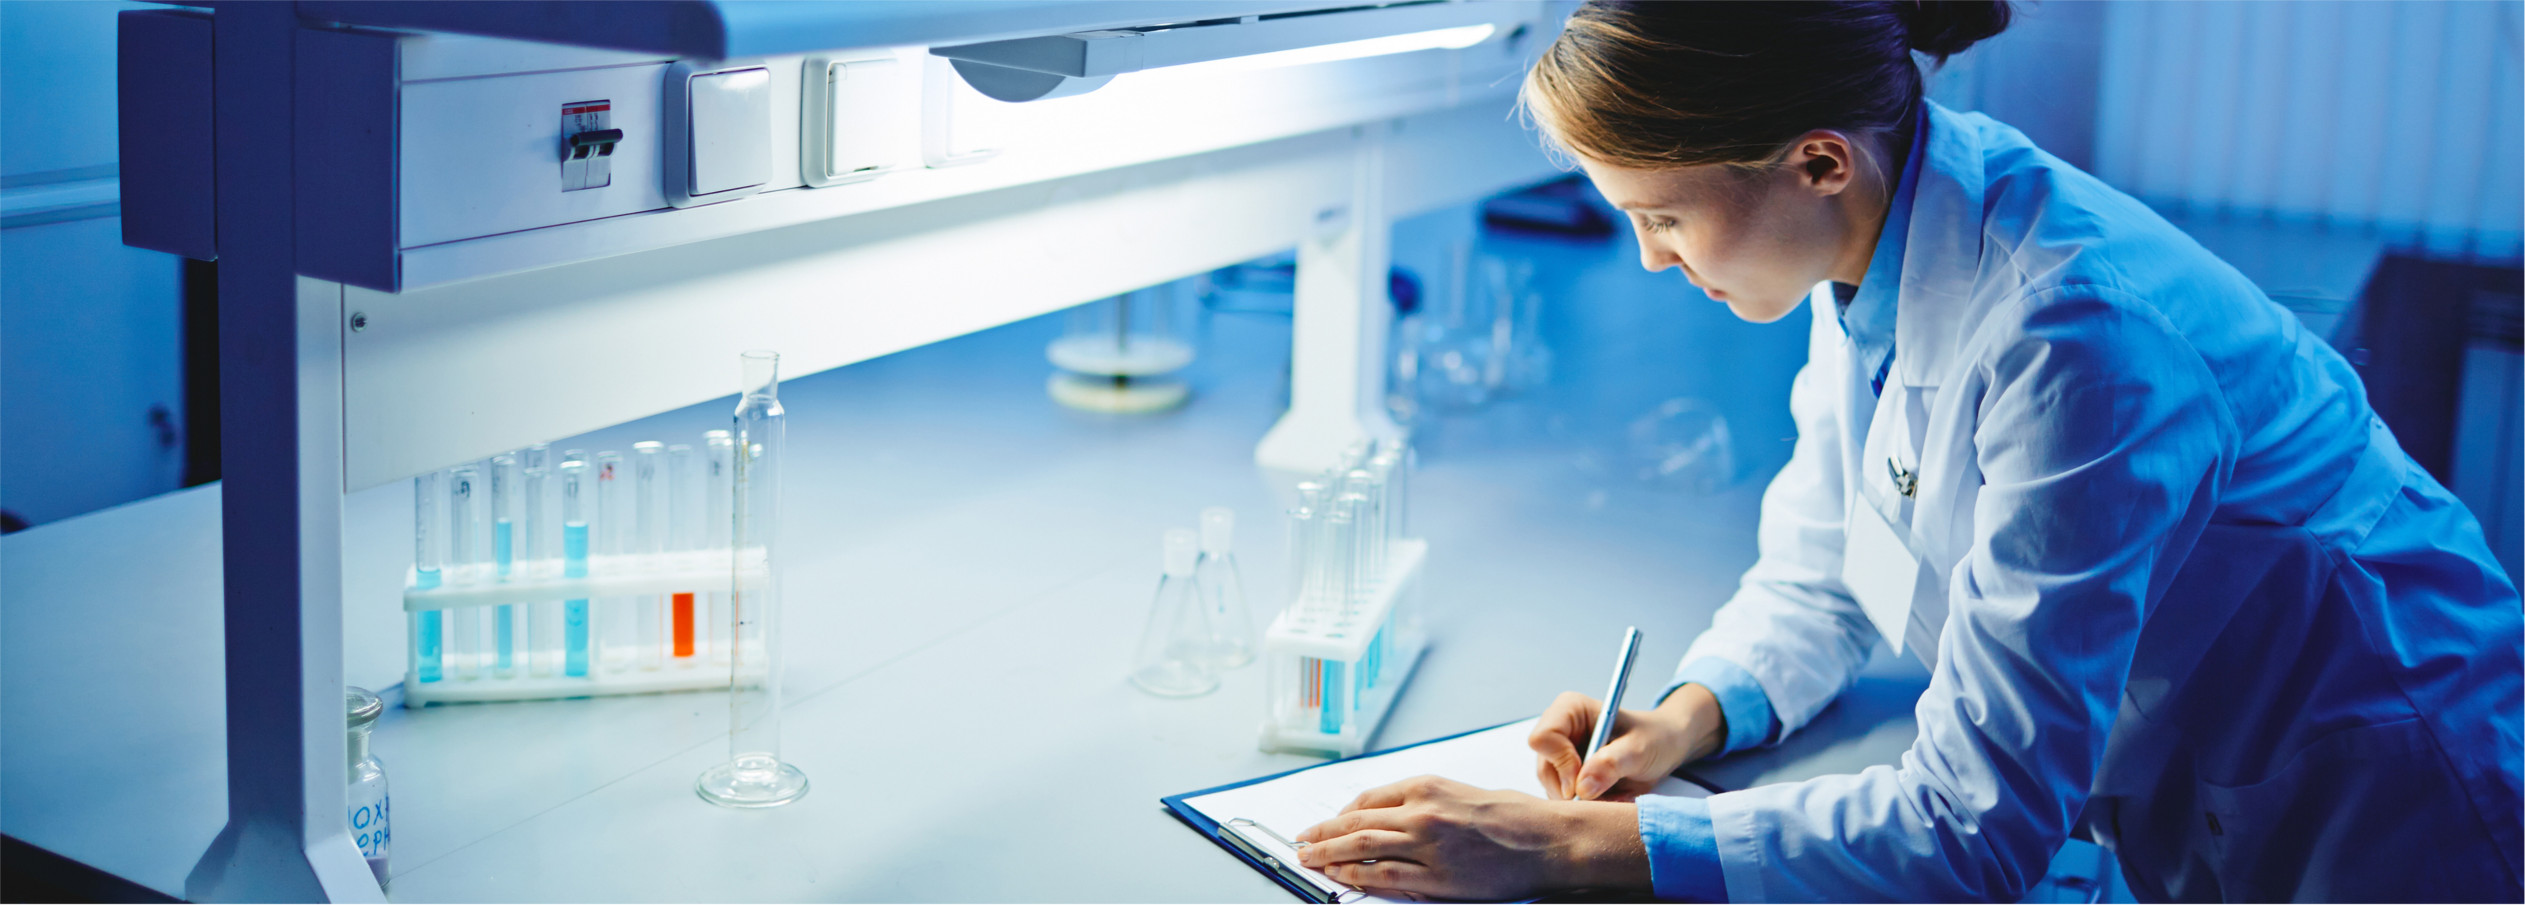 Female researcher making notes in laboratory